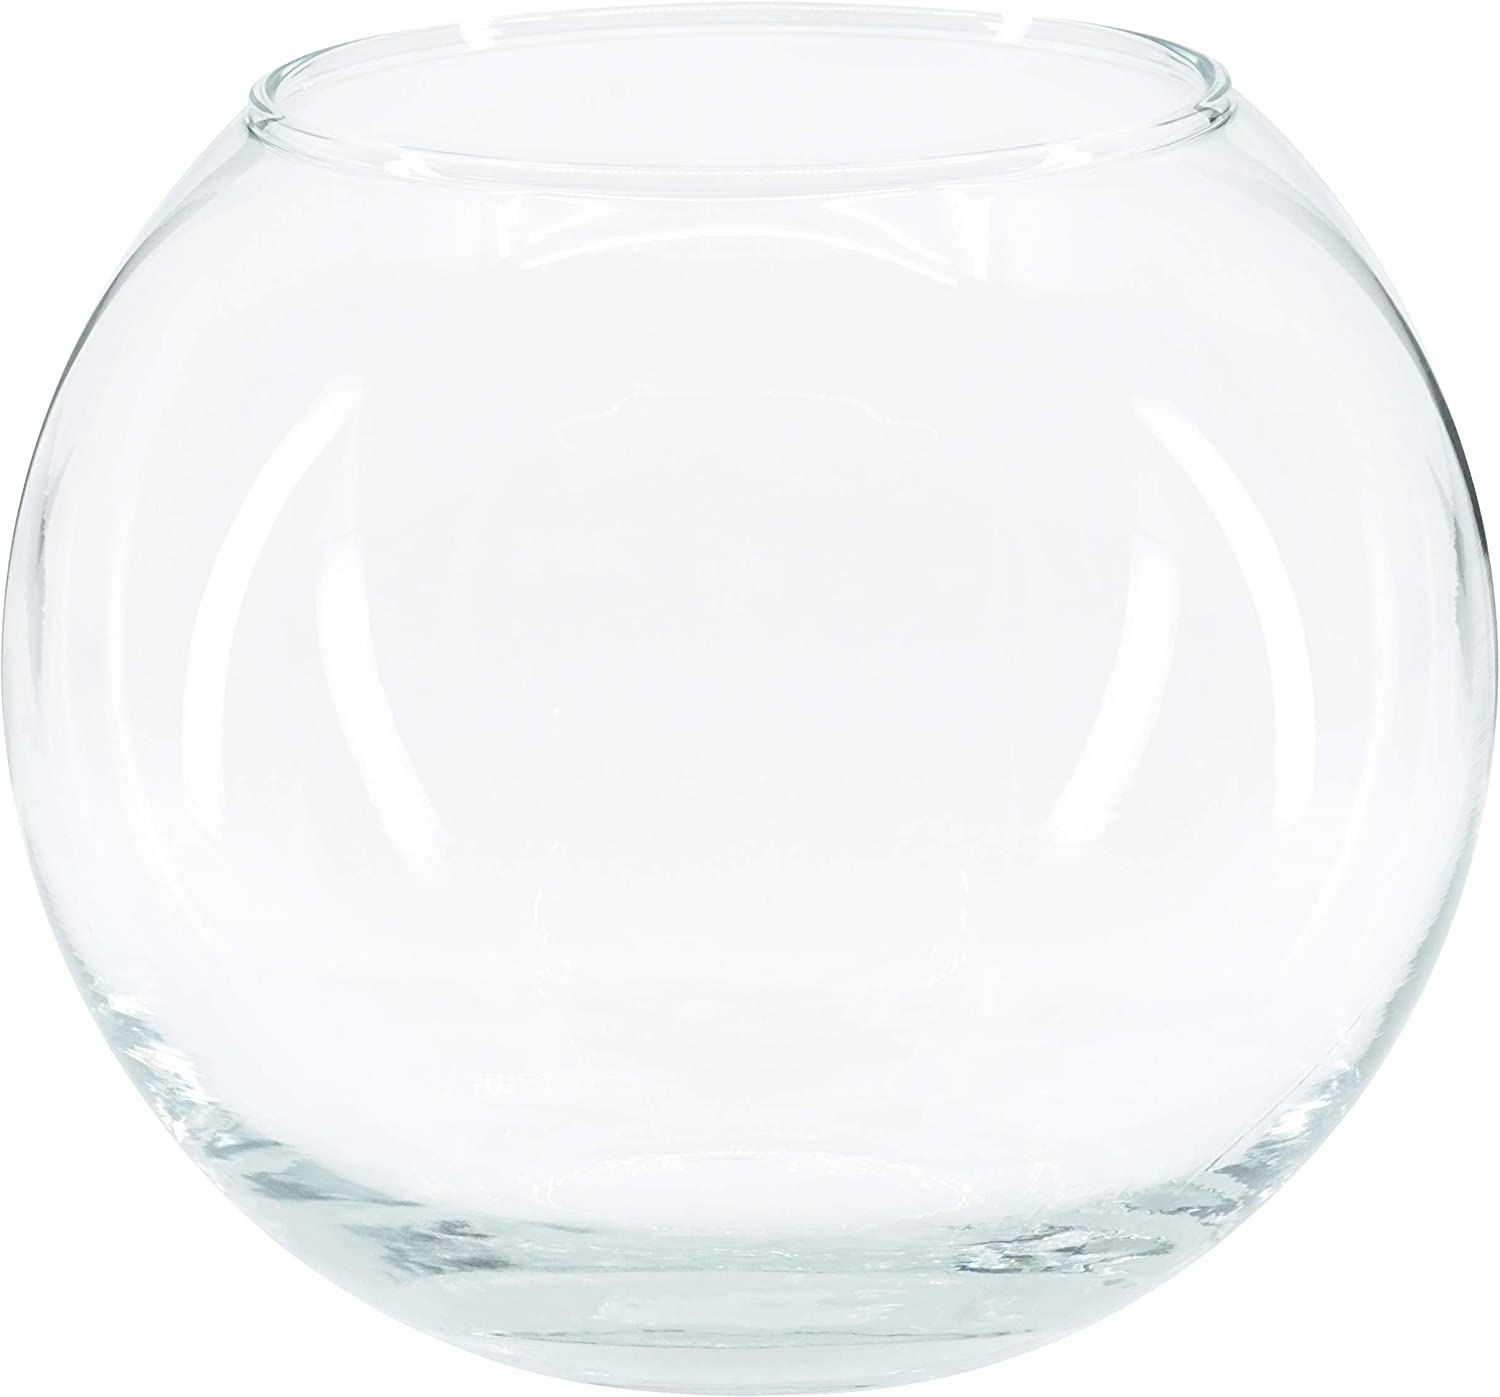 """Red Co. Decorative Glass Bowl Vase 4.5"""" Diameter Clear Bubble Planter Home Office Décor Aromatherapy Craft Projects"""